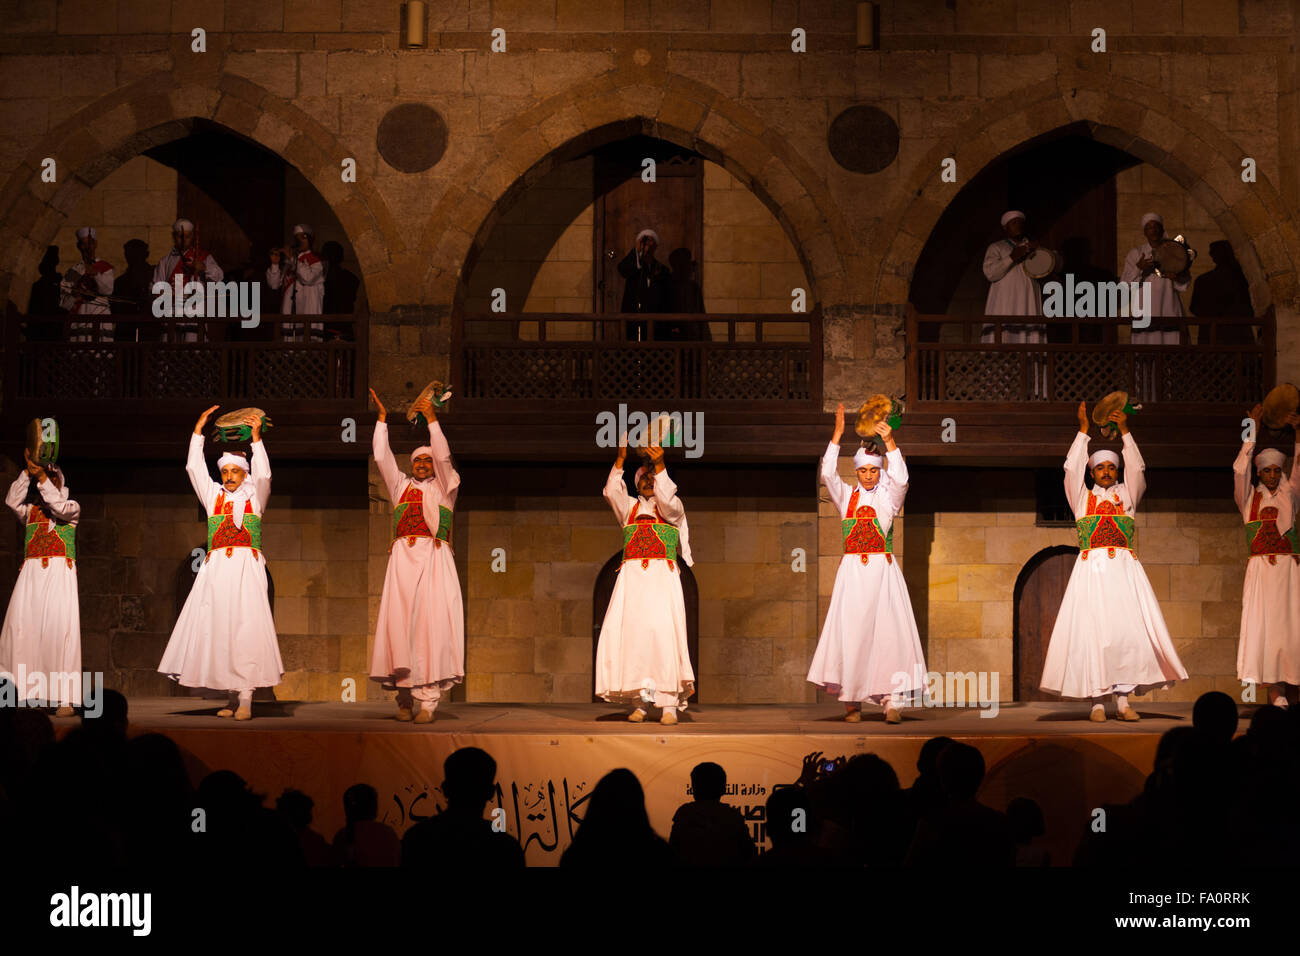 A row of Sufi dancers in white play tamborines during a whirling dervish performance at the Al Ghouri courtyard - Stock Image